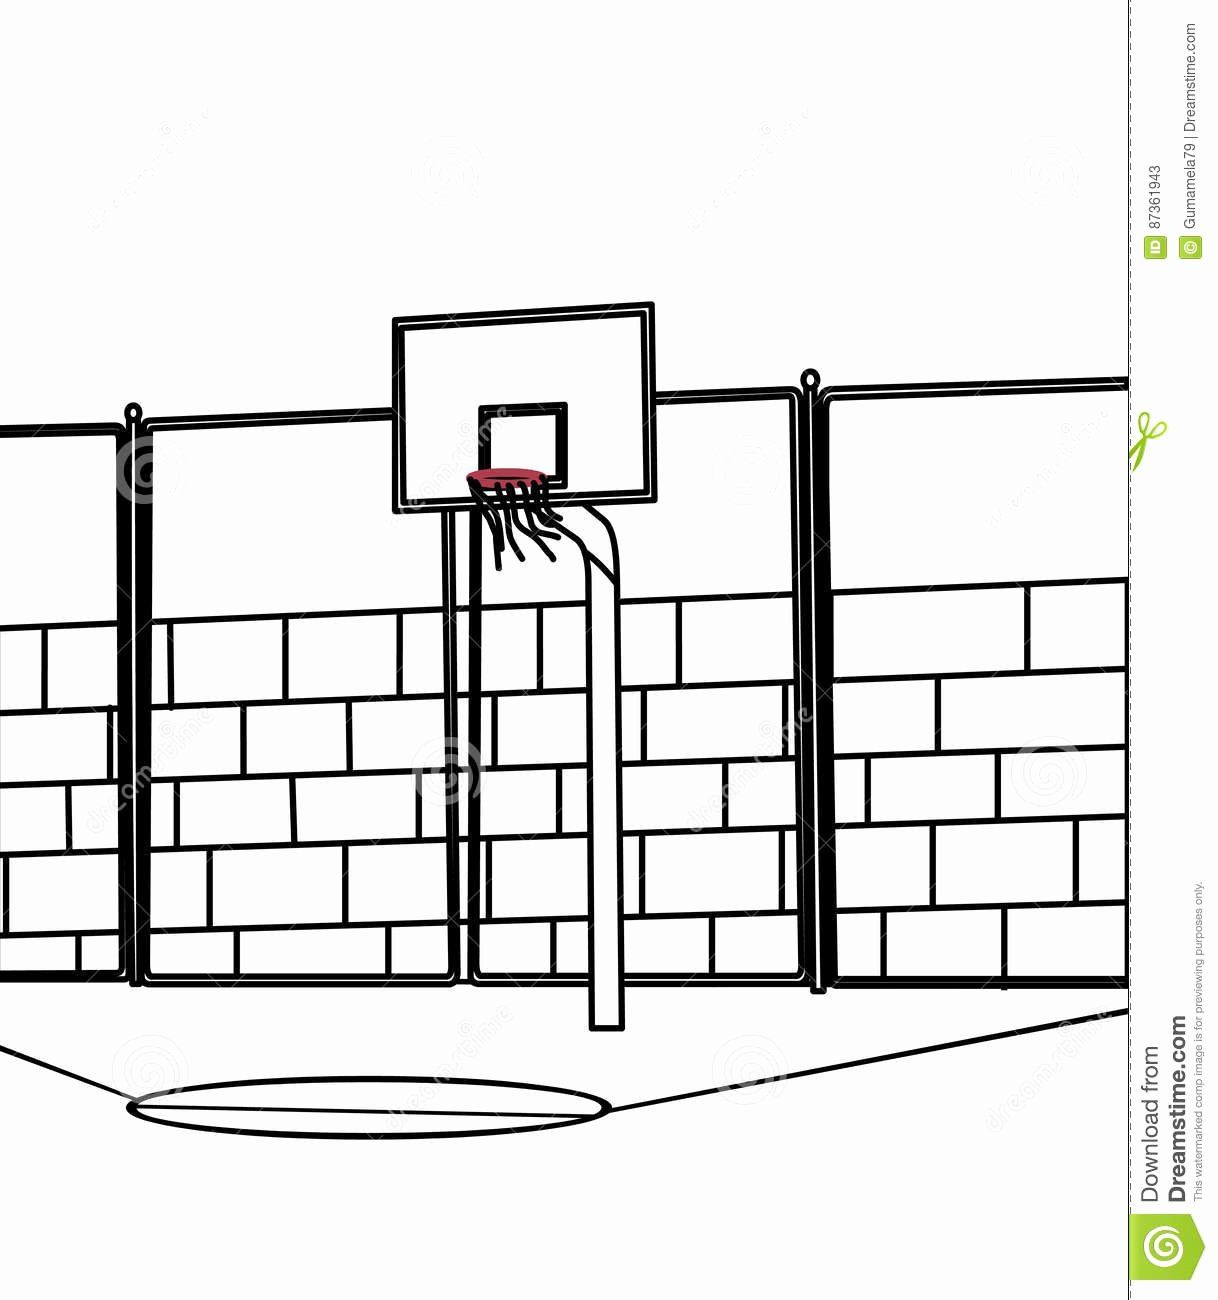 Coloring Pages Of Basketballs Lovely Of Basketball Court Coloring Pages Sabadaphnecottage Coloring Pages Sports Coloring Pages Color